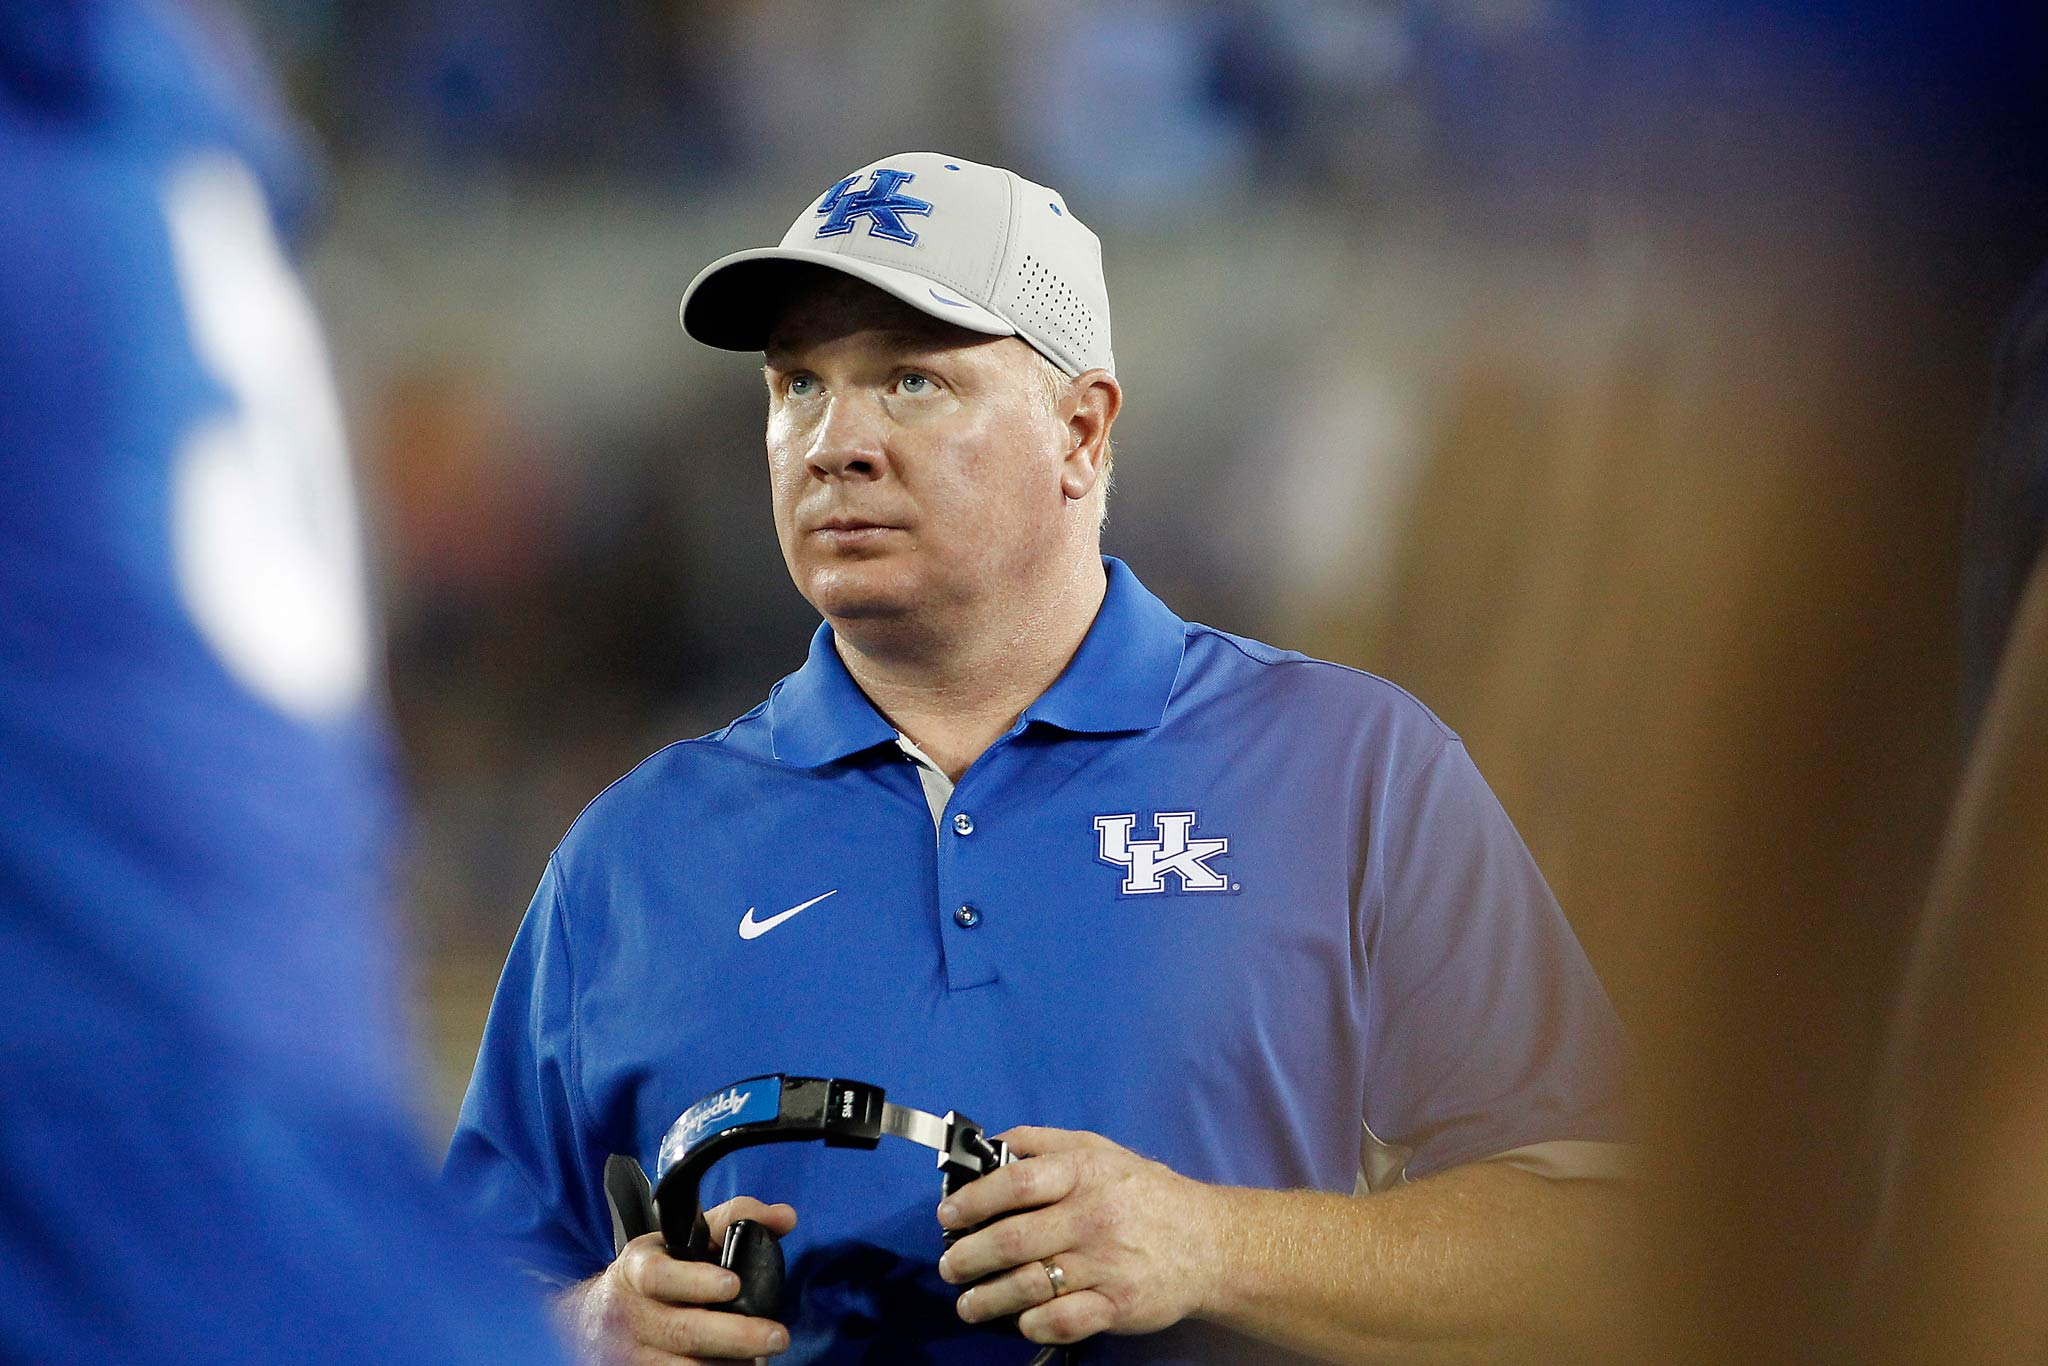 Coach Stoops, holding a headset, looks up during a game. He is wearing a blue UK polo shirt and UK baseball cap. The background and foreground are both blurred.